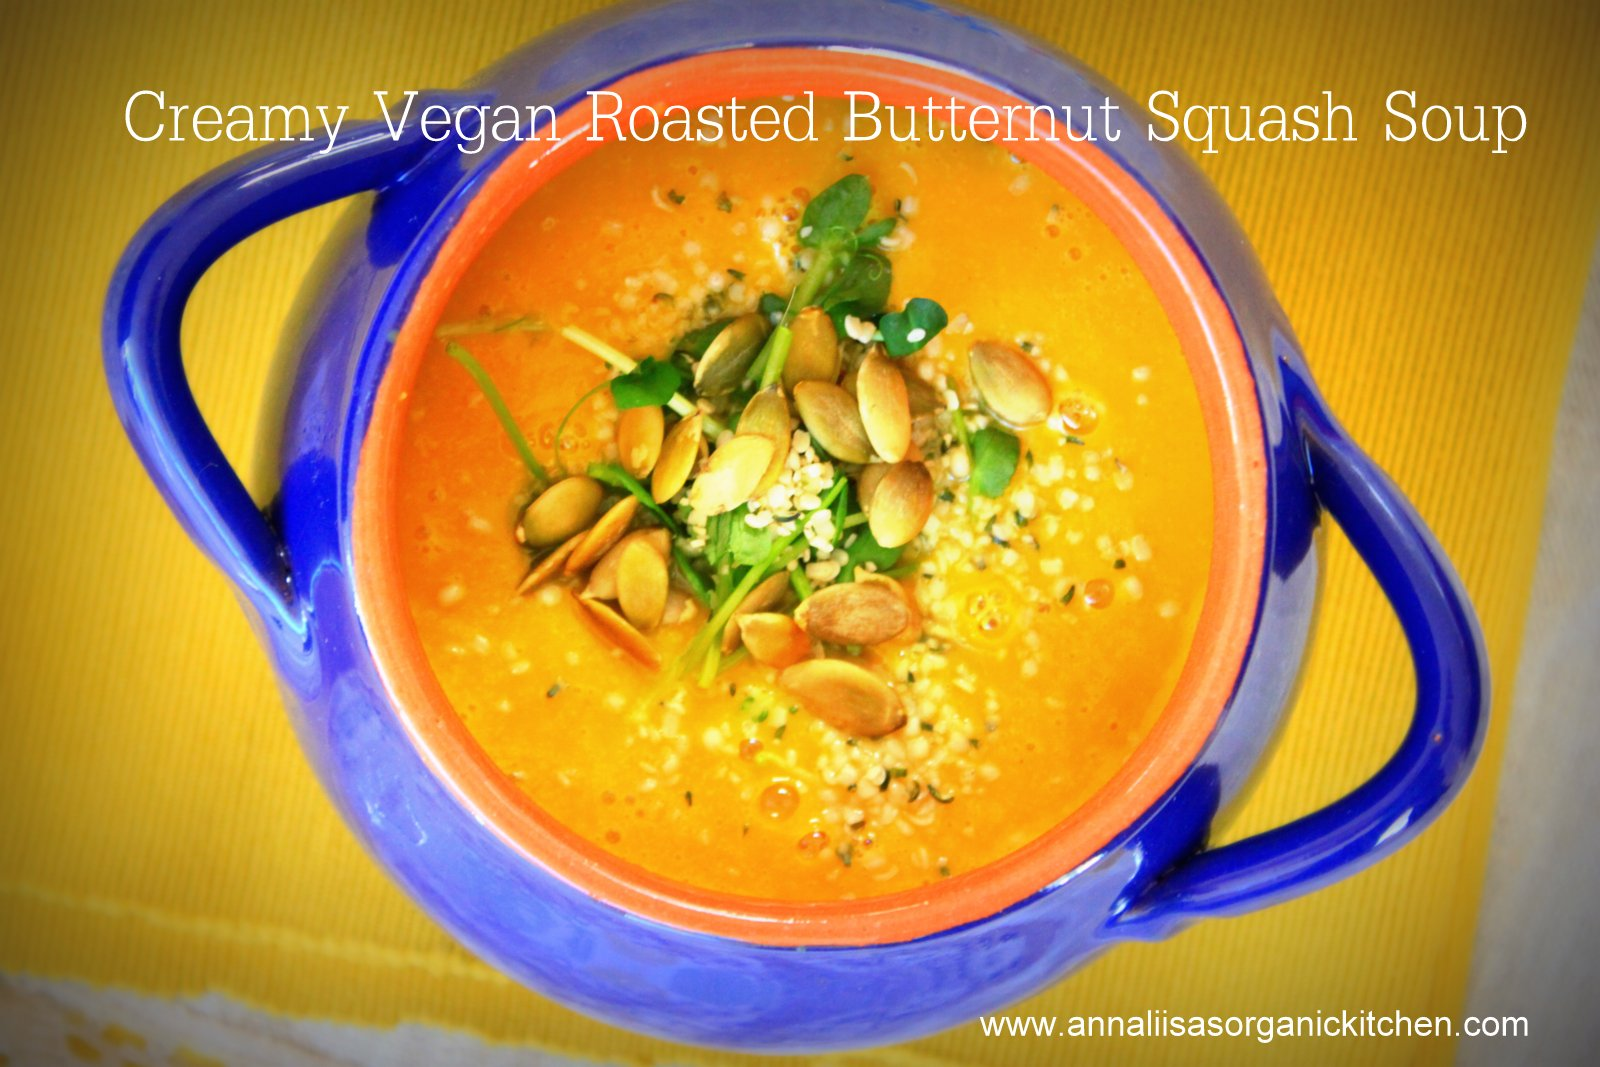 ... with in the Autumn + Creamy Vegan Roasted Butternut Squash Soup Recipe